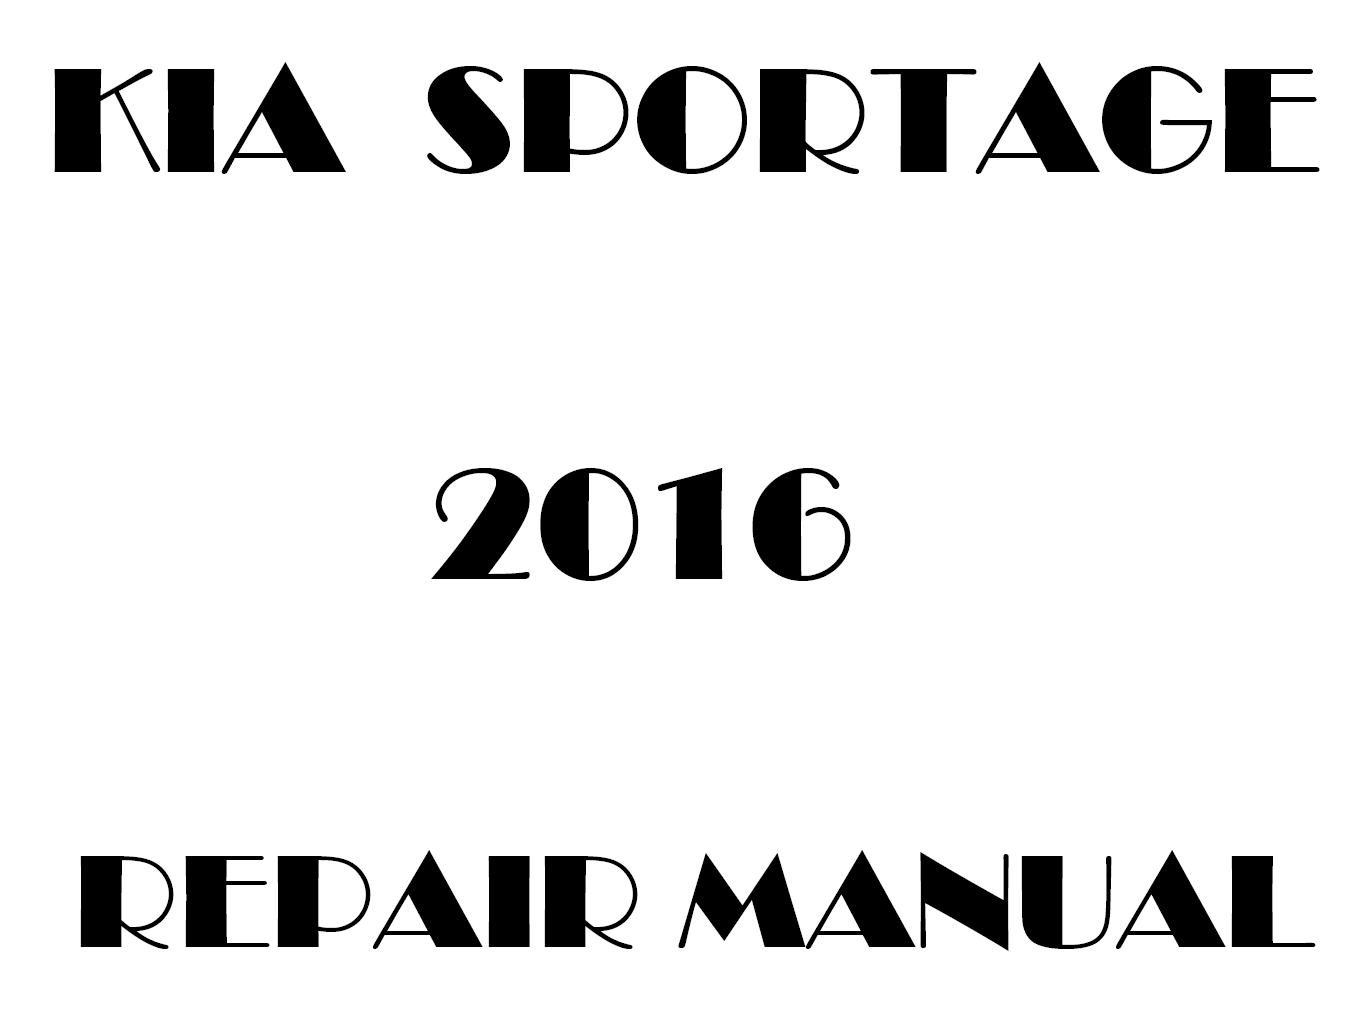 2016 Kia Sportage repair manual